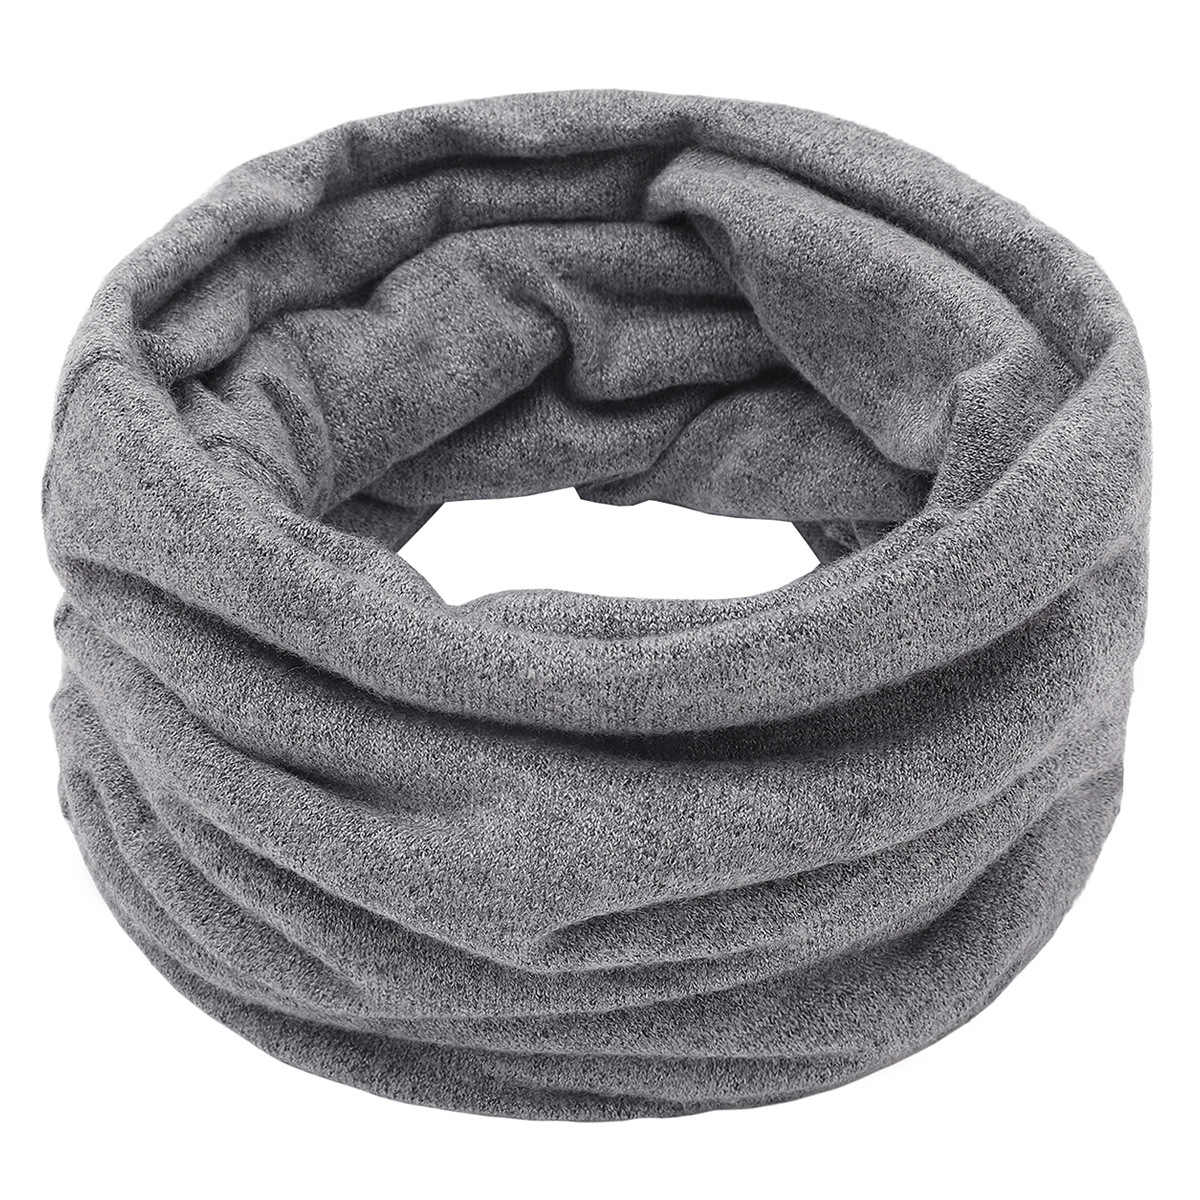 Plain Color Cotton Neck Warmer Reversible Winter Warm Neck Gaiter Tube Ear Warmer Circle Scarf for Man Woman